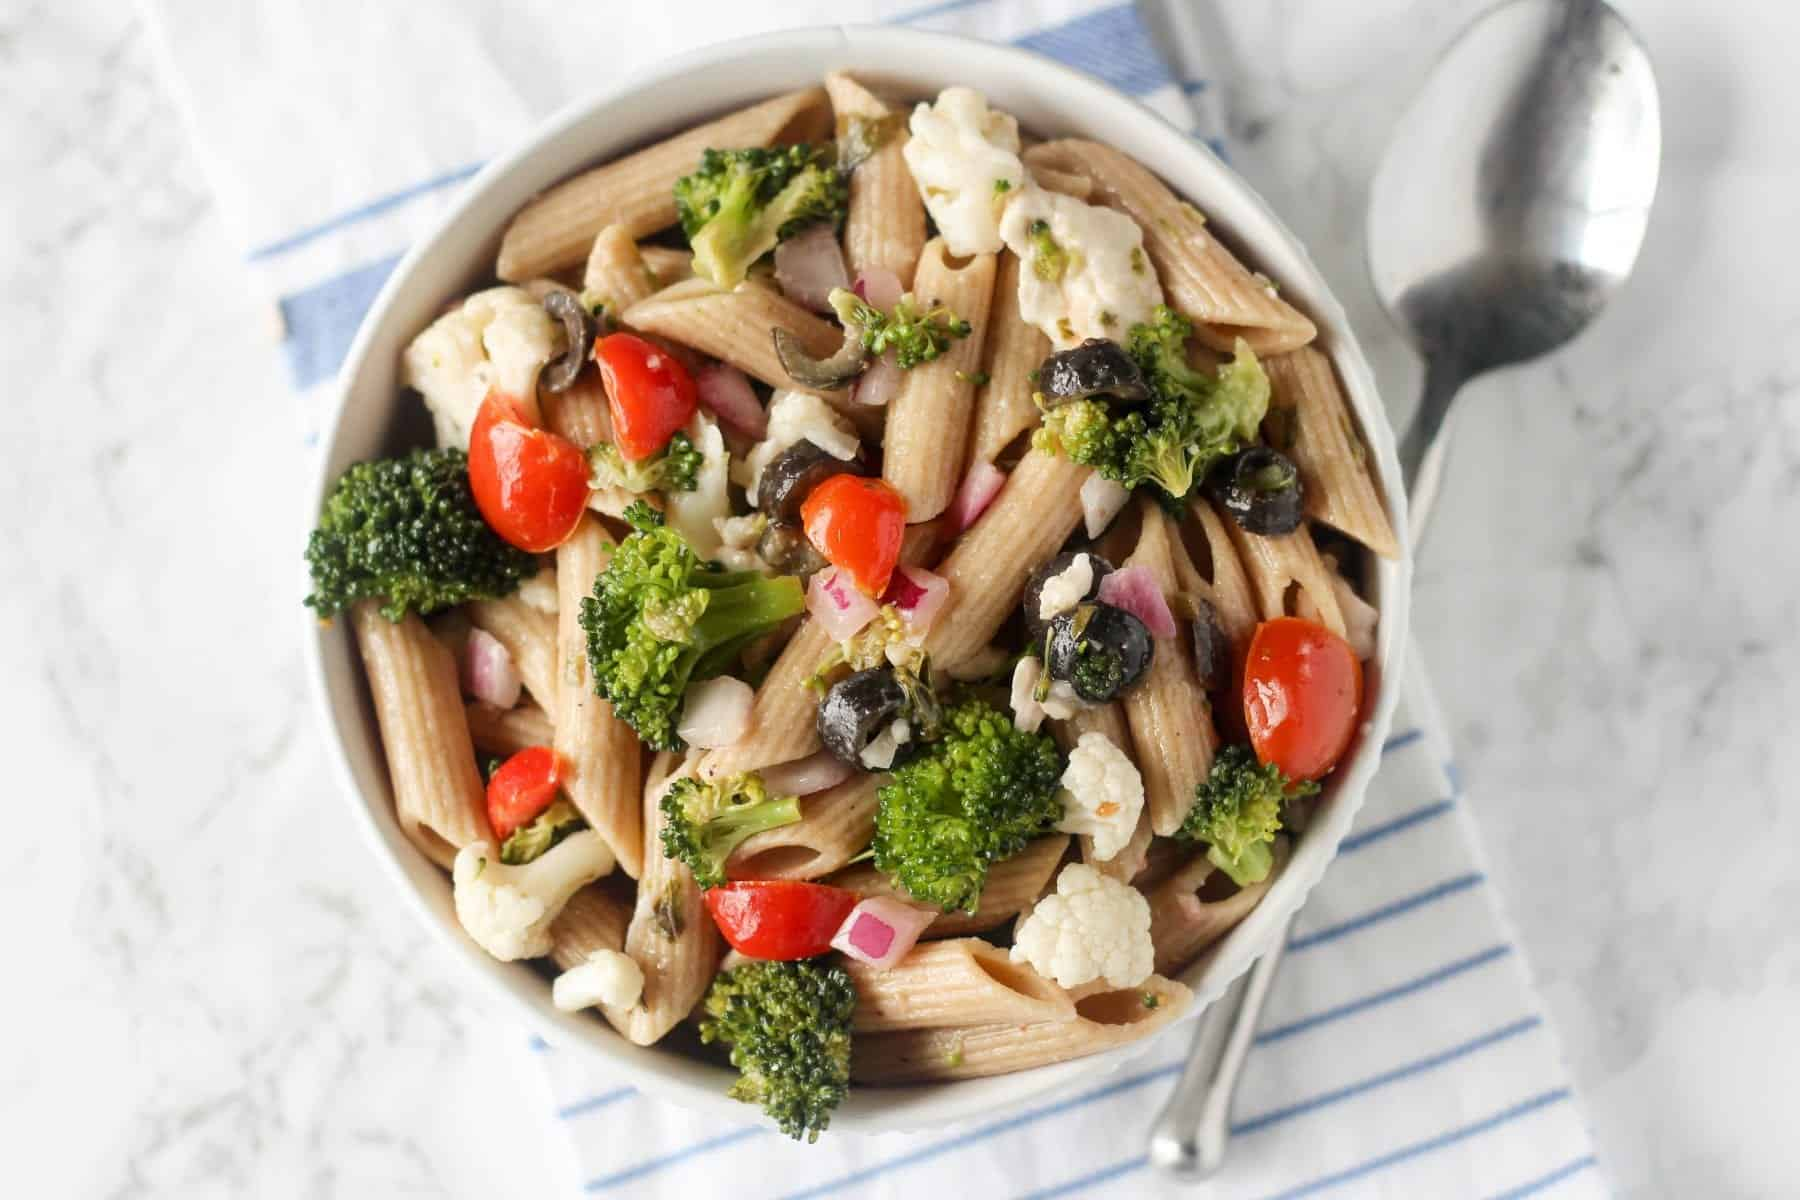 his Greek Pasta Salad is super healthy and light, and fits perfectly in the 21 Day Fix! I use it as a side dish, but you could also add grilled or roasted chicken to it for a very simple meal! Serve it chilled.